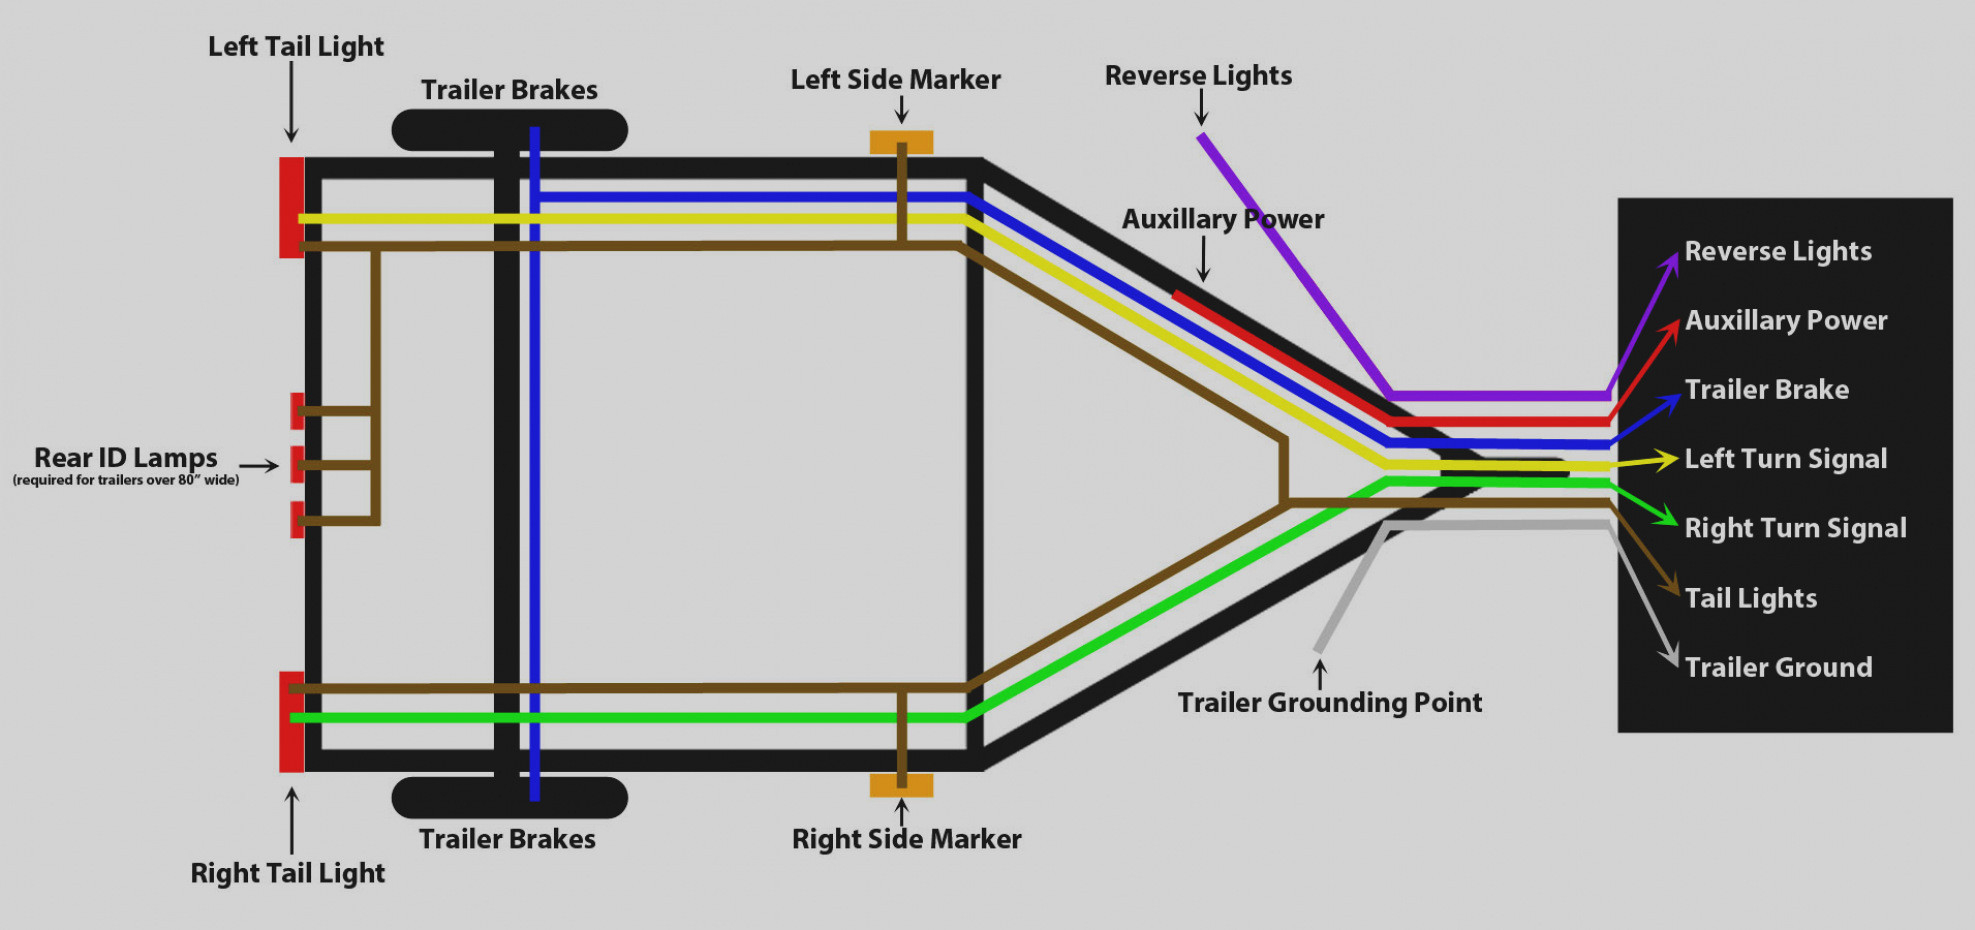 4 Prong Trailer Plug Wiring Diagram Wire Flat - Wiring Diagram Name - 4 Pole Trailer Wiring Diagram